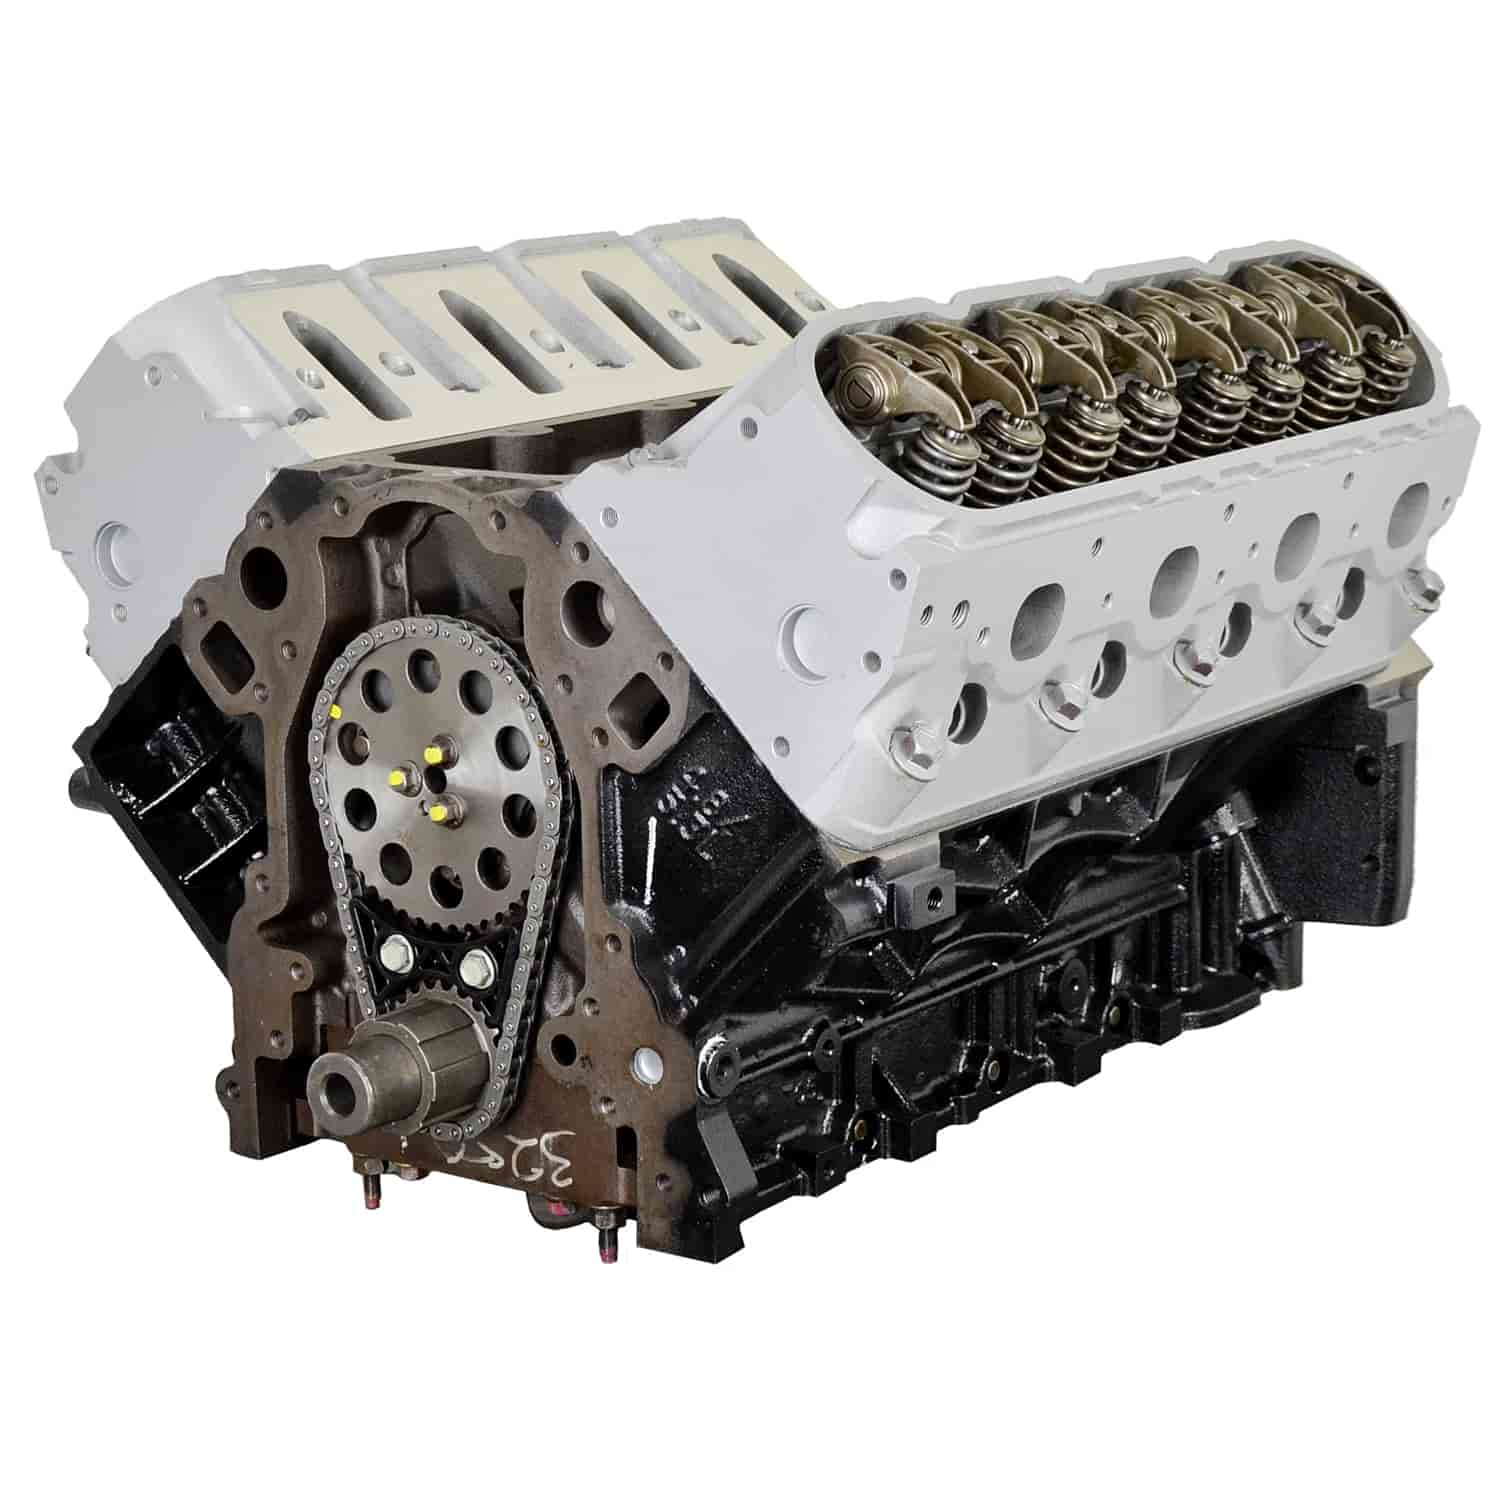 Atk Engines Hp97 High Performance Crate Engine Gm Ls 5 3l 385hp